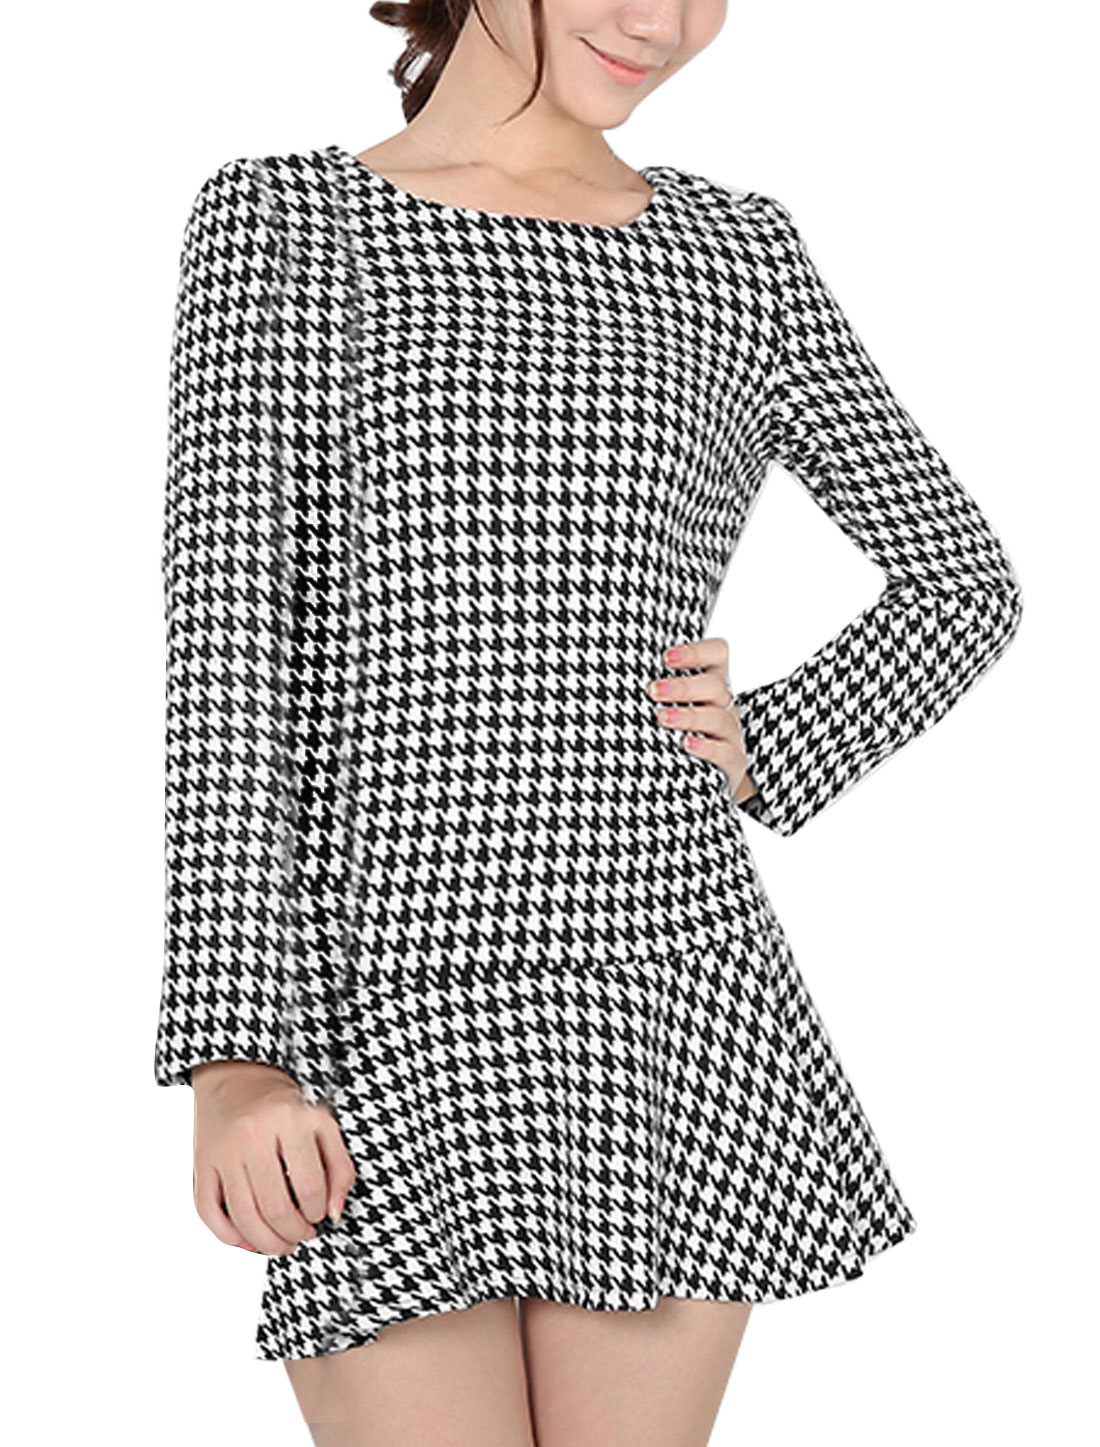 Ladies Black White Houndstooth Prints Long Sleeves Leisure Dress L